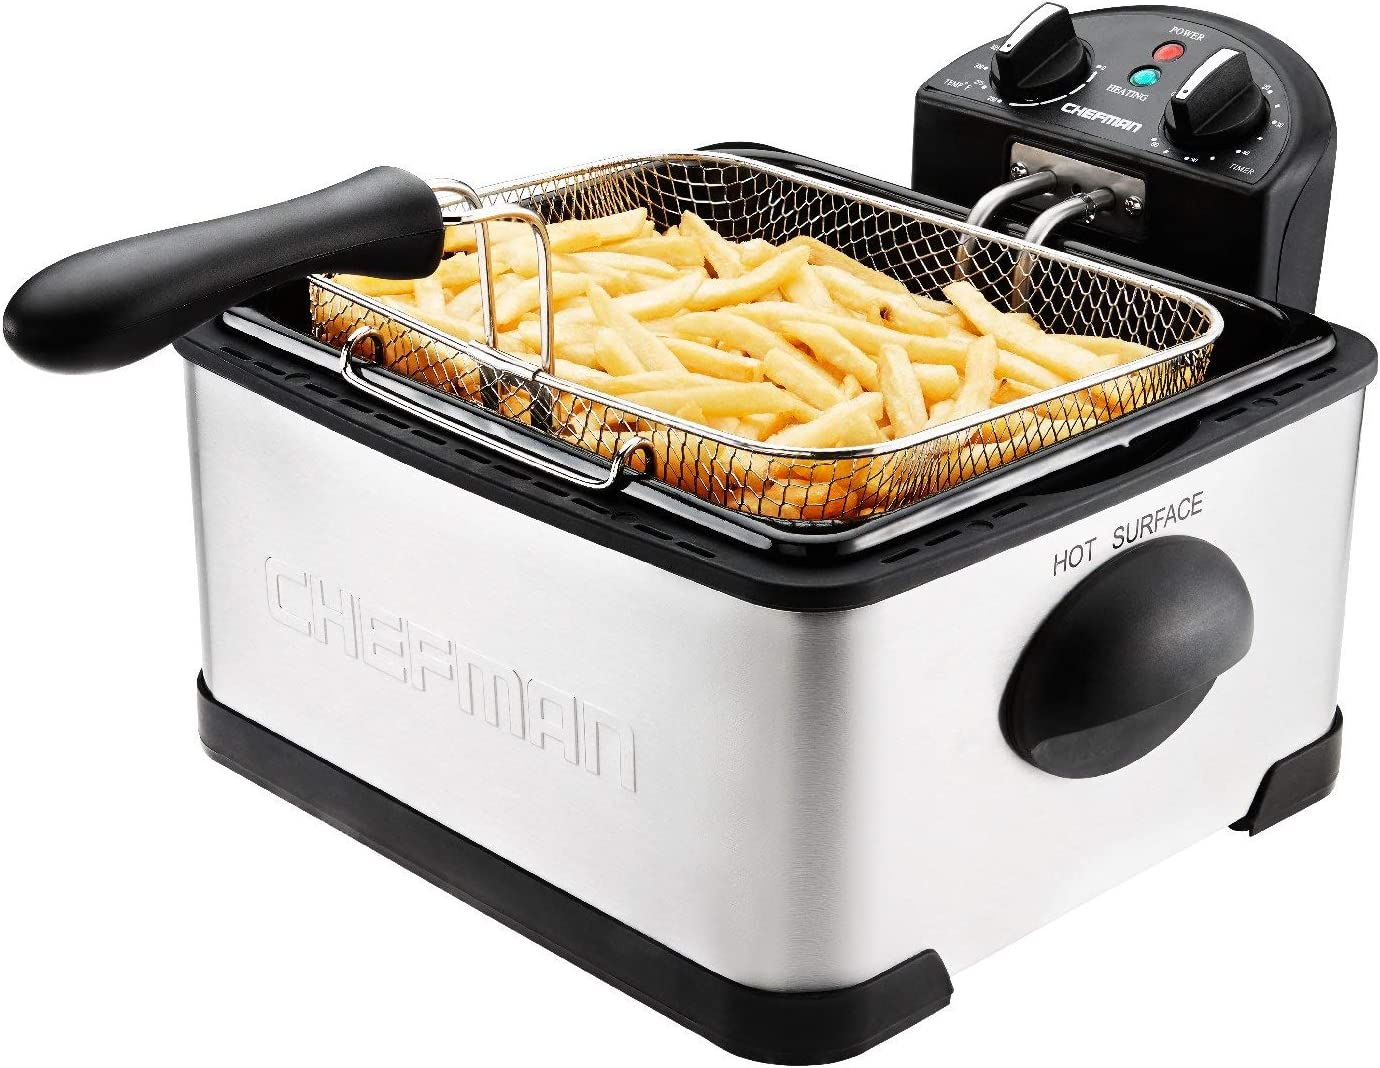 Chefman Deep Fryer with Basket Strainer Perfect for Chicken, Shrimp, French Fries and More, Removable Oil Container and Rotary Knob for Adjusting the Temperature, Stainless Steel, 4.5 Liter (Renewed)